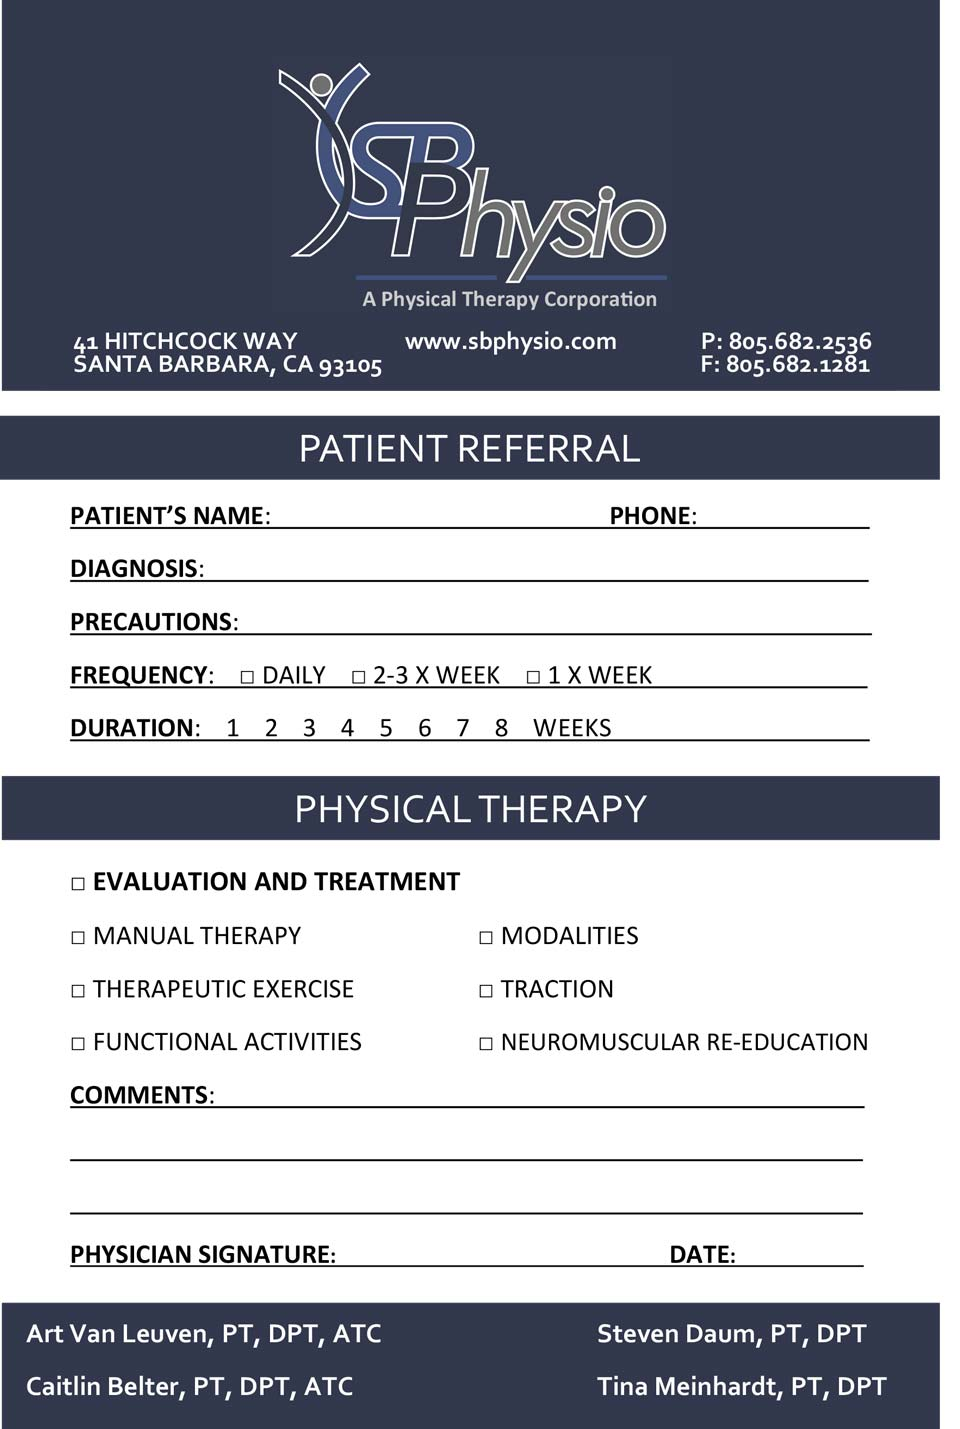 Referral Slip Image